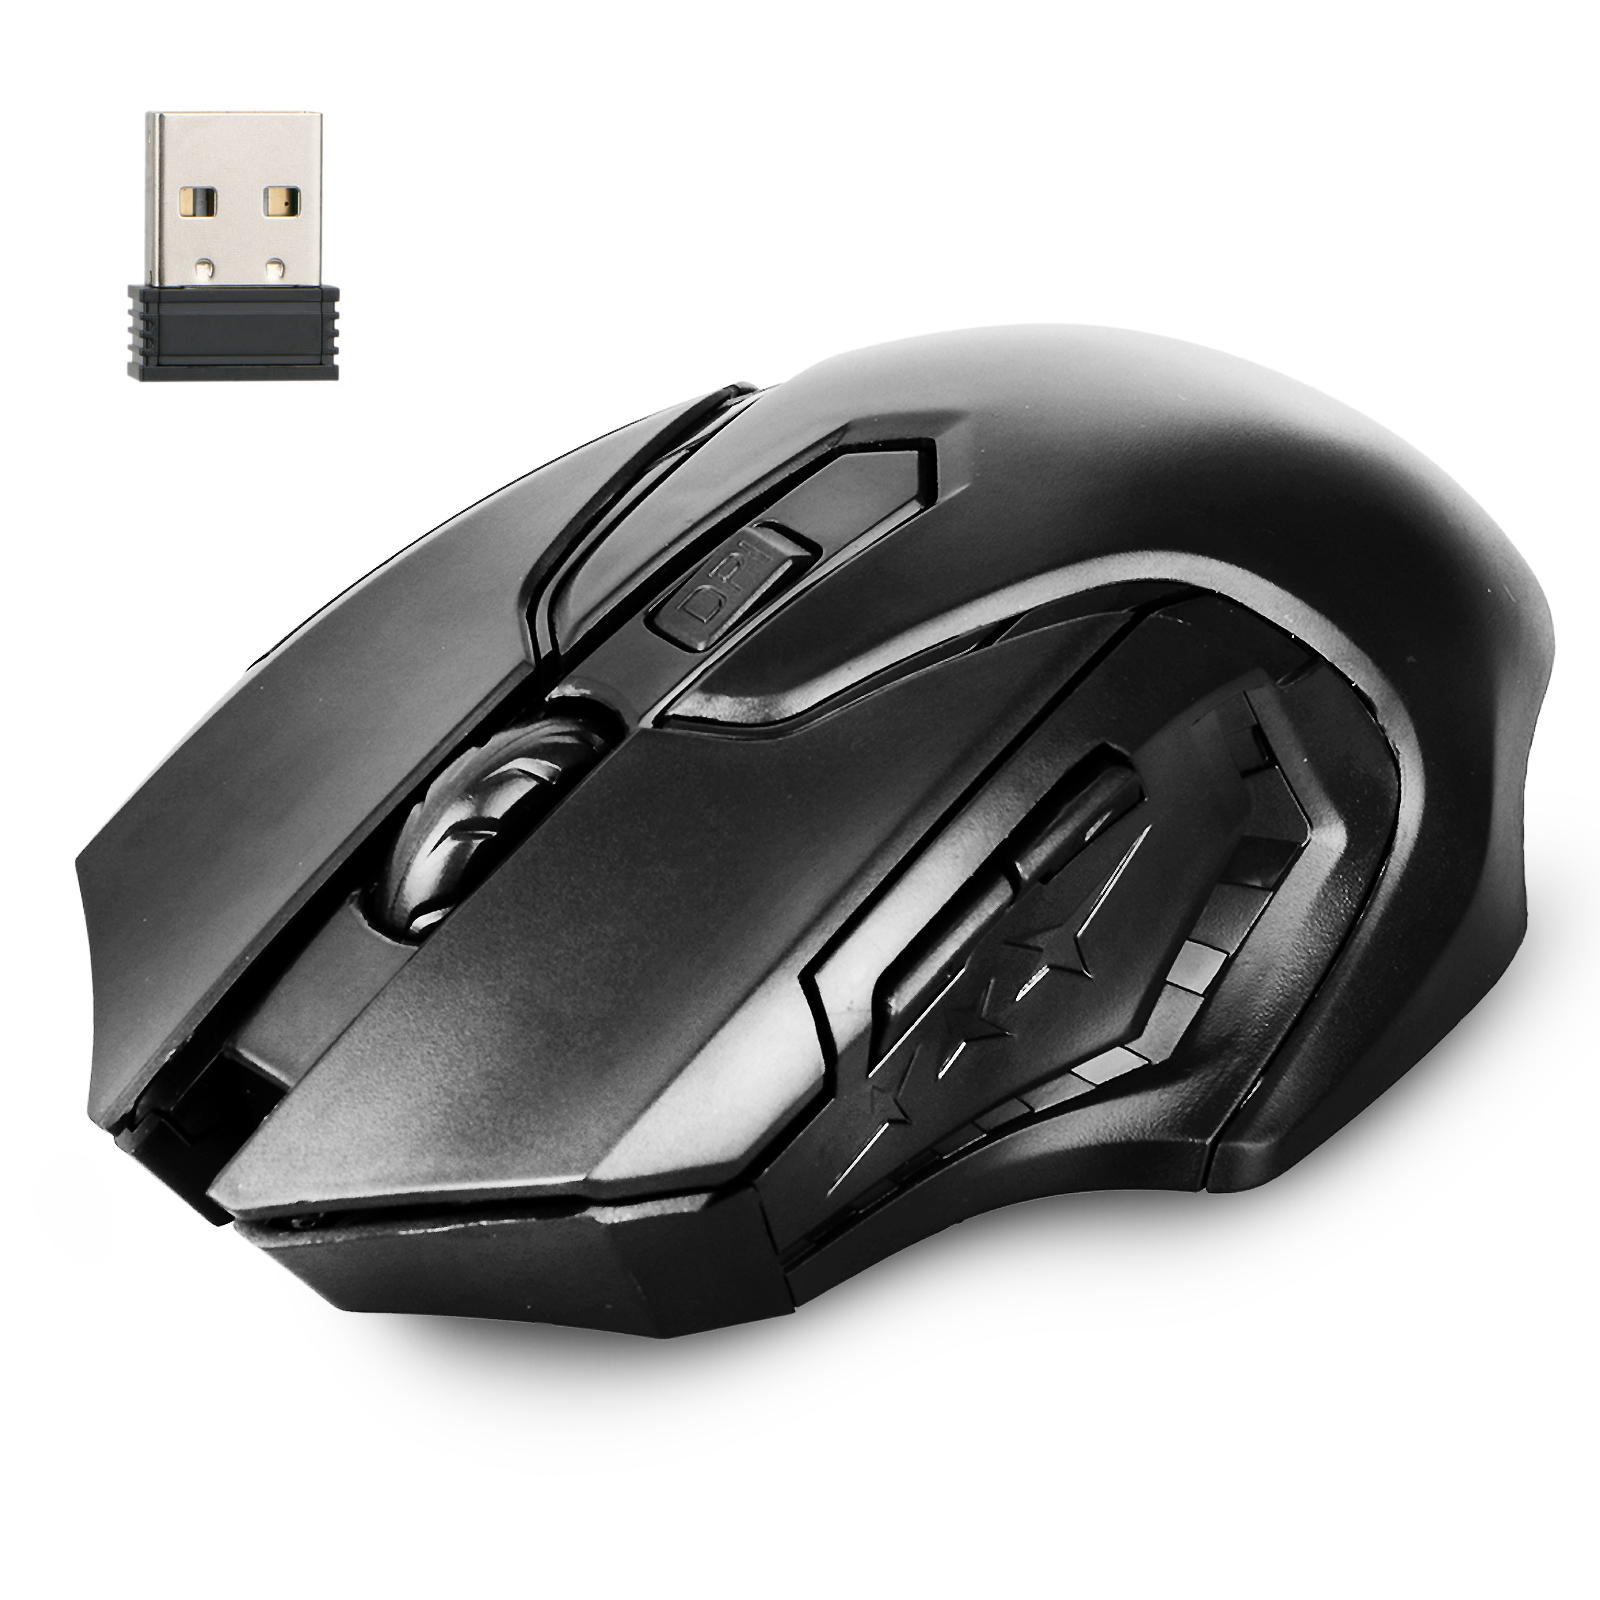 Wireless Gaming Mouse, TSV 2.4Ghz Laptop Wireless Ergonomic Optical Mouse with USB Receiver, 6 Buttons, 800/1200/1600 DPI, Compatible with Windows, Mac OS